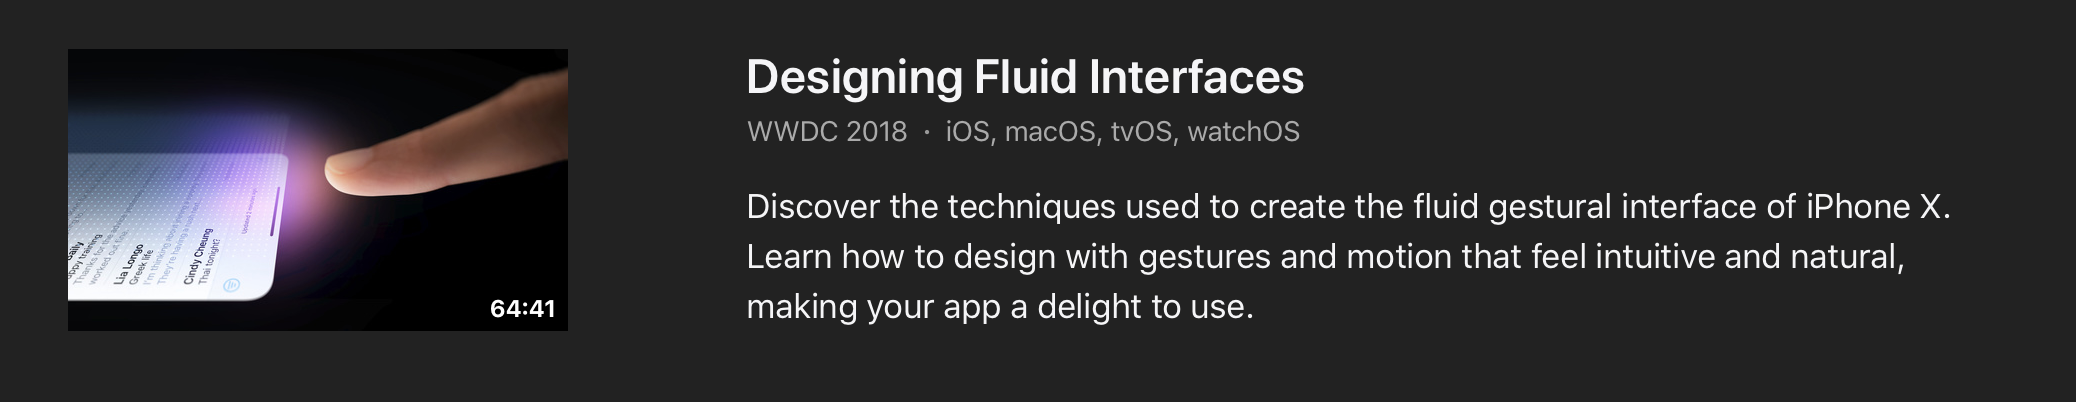 Designing Fluid Interfaces.png